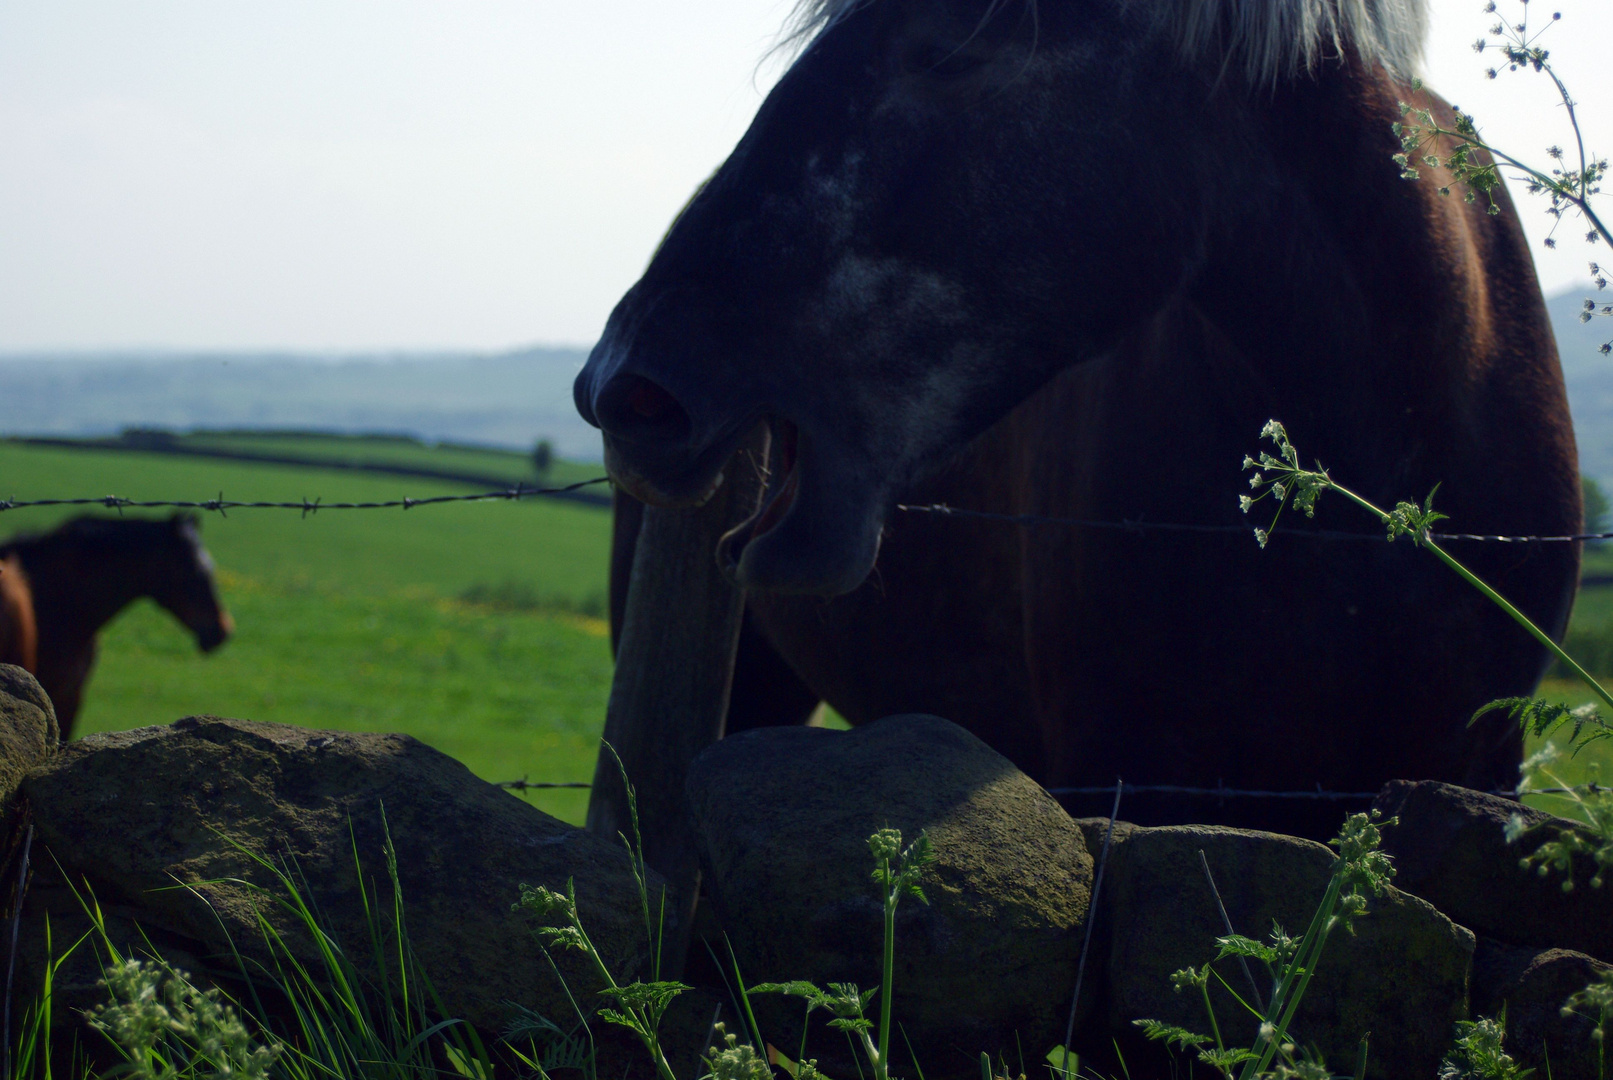 ...hungry horse...